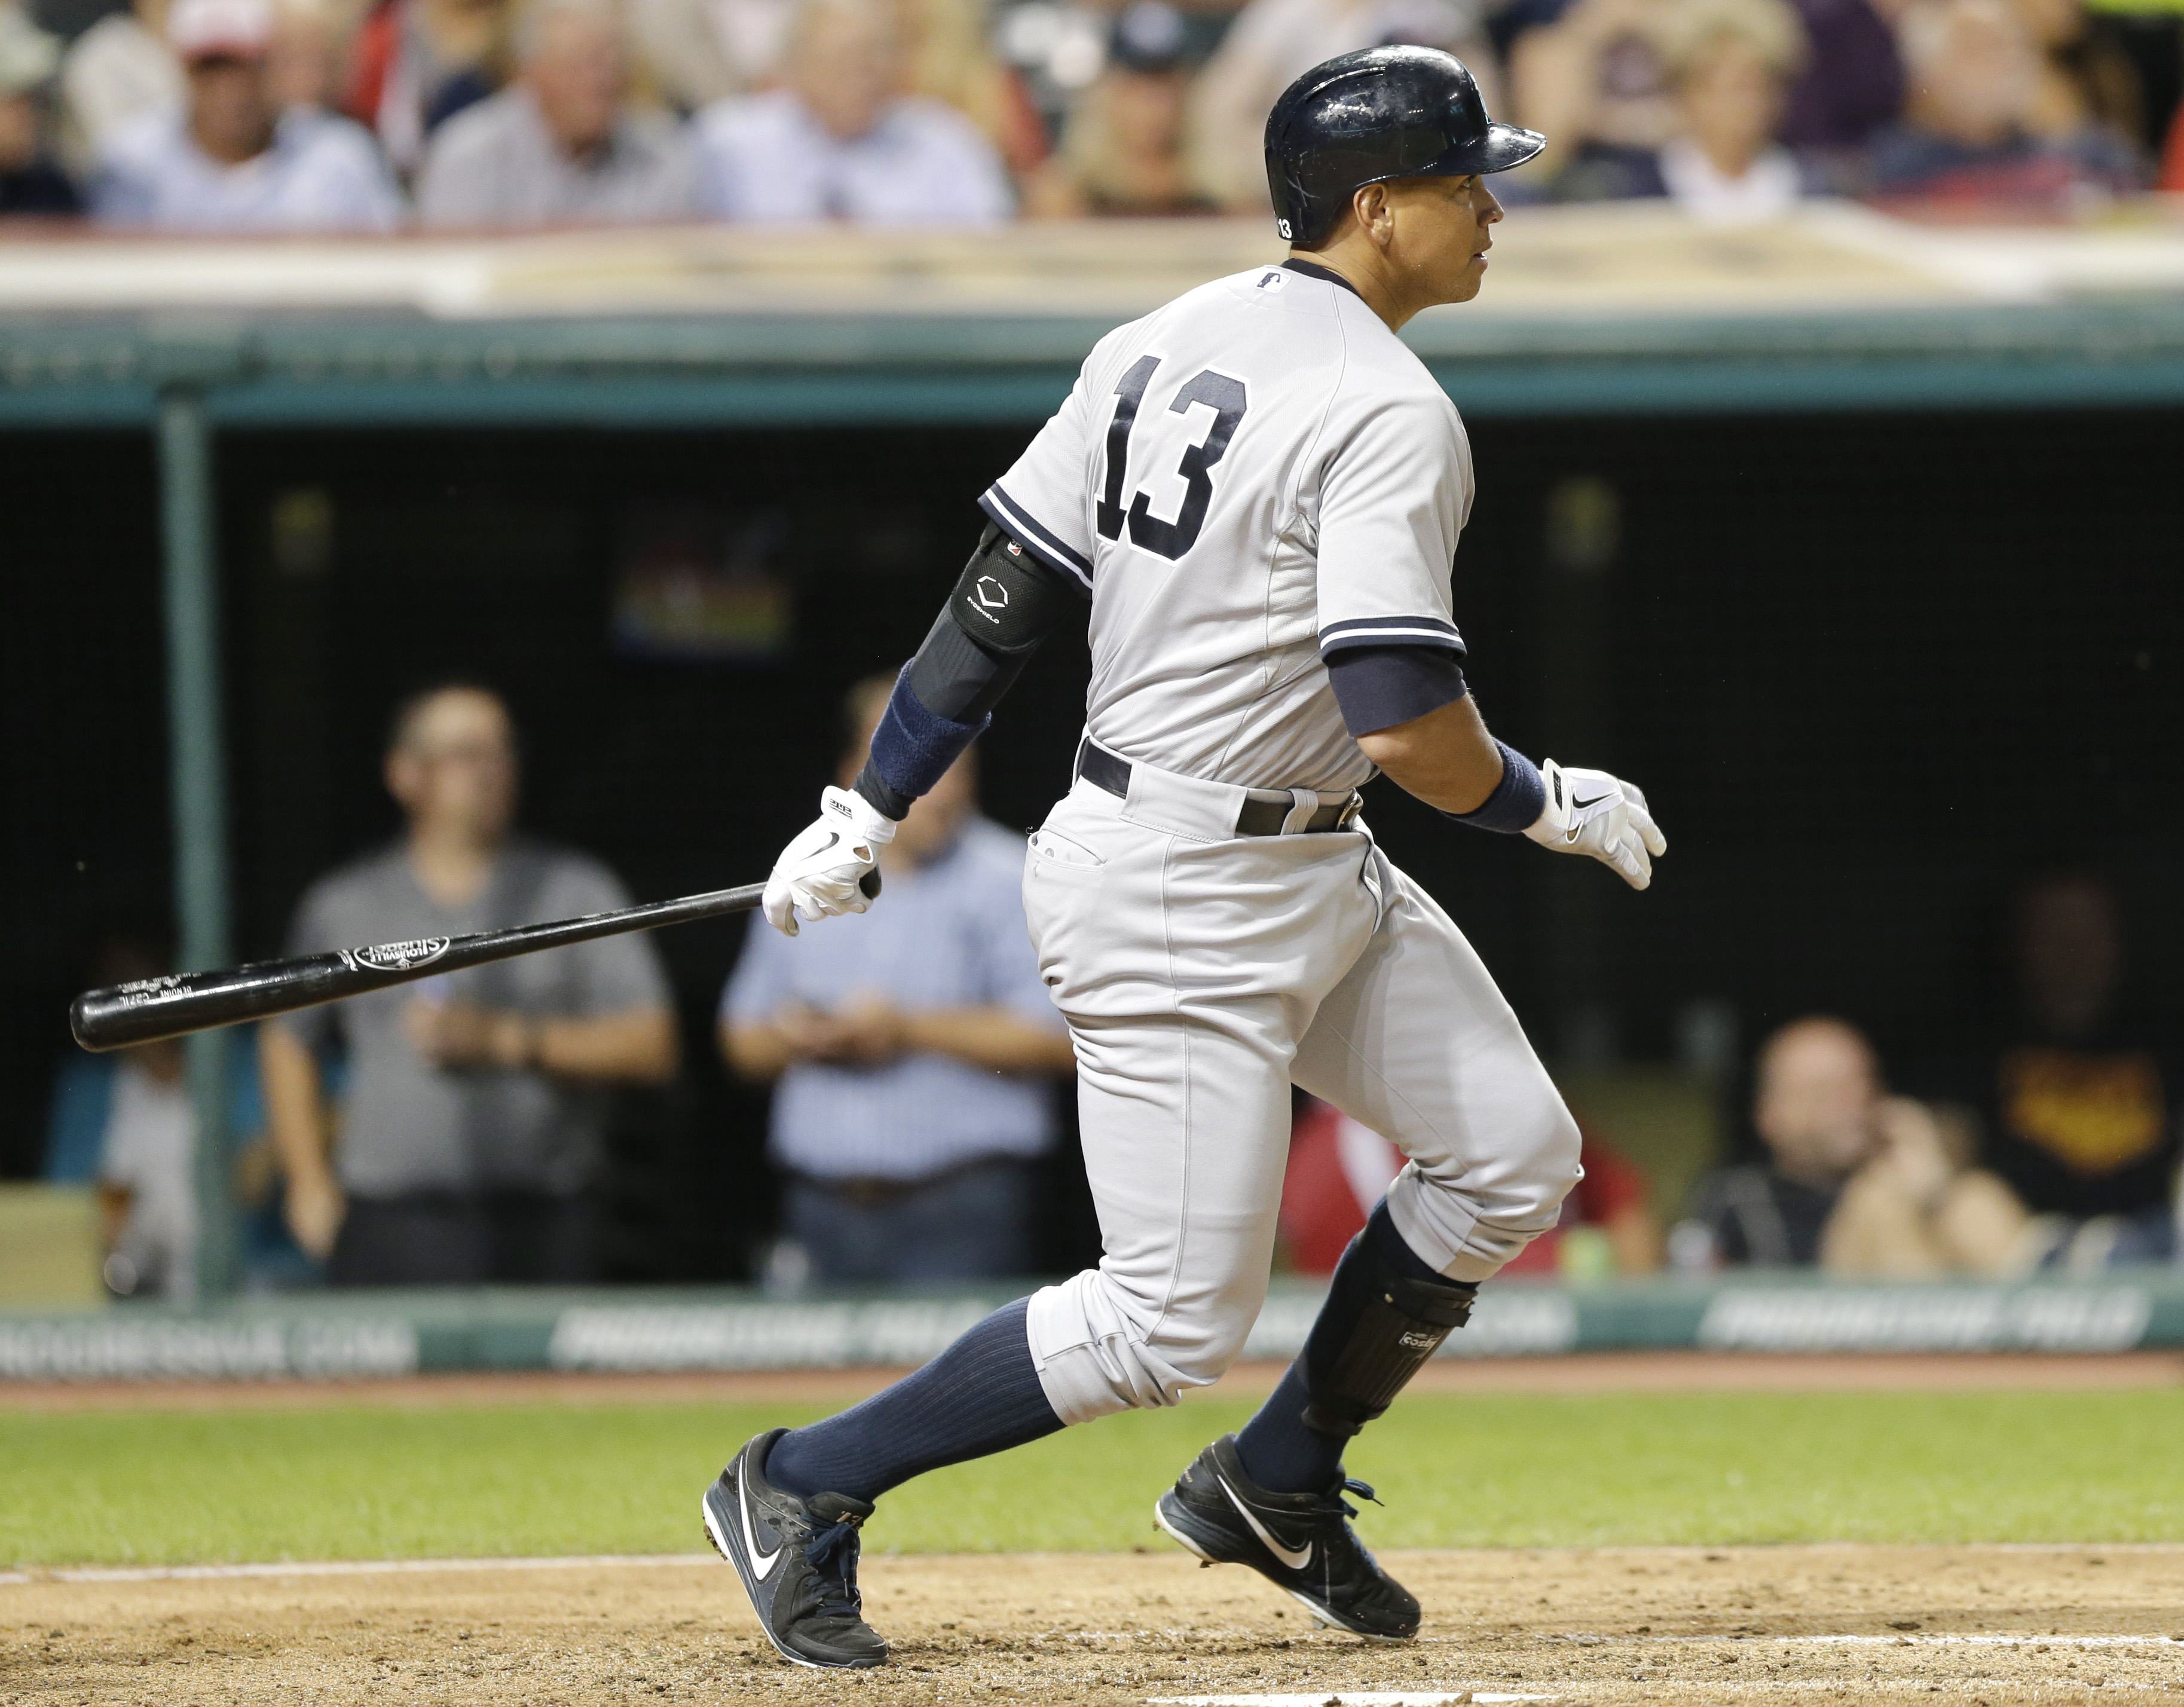 New York Yankees' Alex Rodriguez hits a single off Cleveland Indians starting pitcher Carlos Carrasco in the seventh inning of a baseball game, Tuesday, Aug. 11, 2015, in Cleveland. (AP Photo/Tony Dejak)